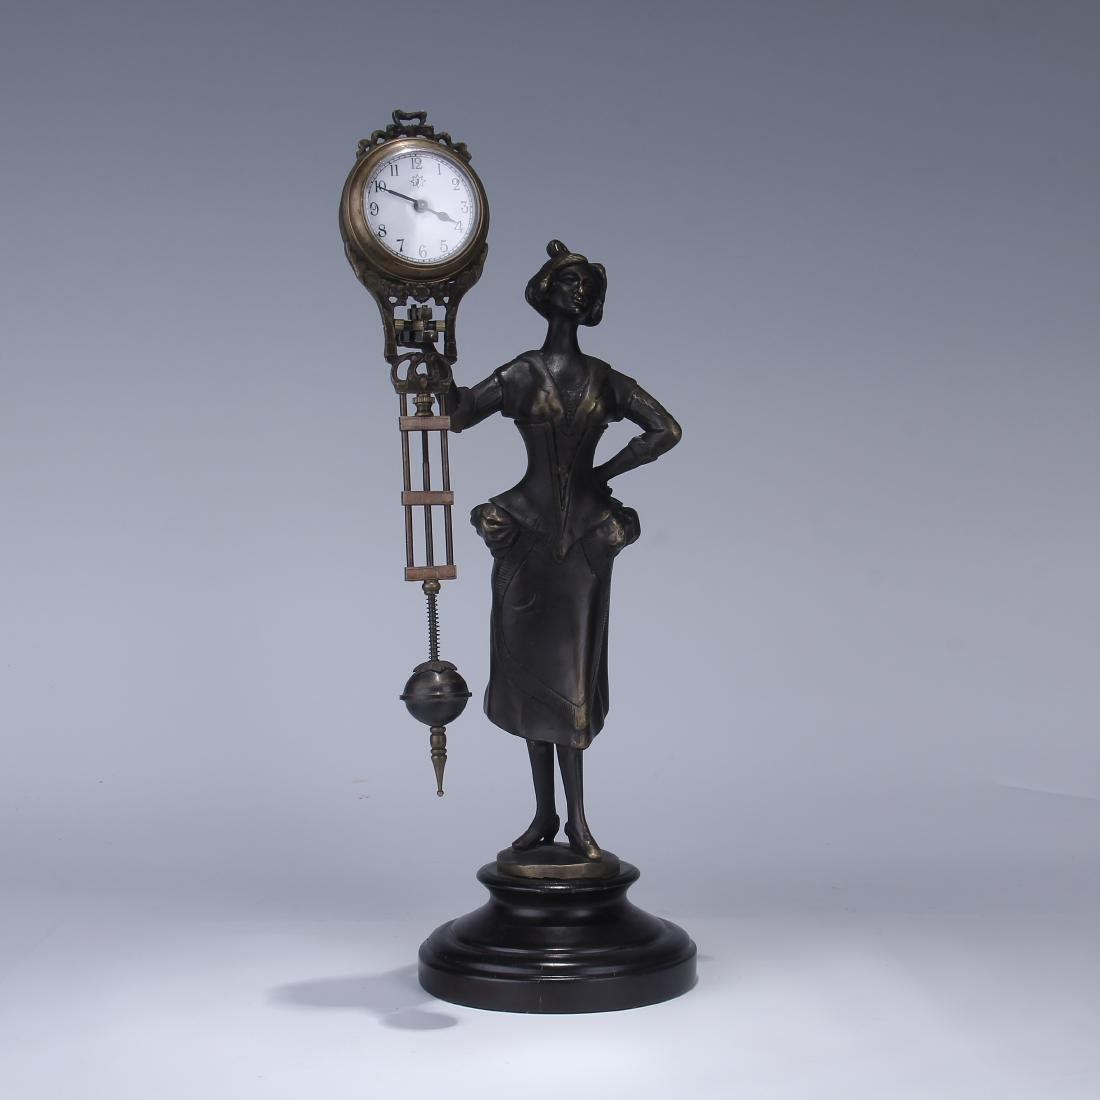 CAST METAL FIGURAL GERMAN SWING ARM CLOCK